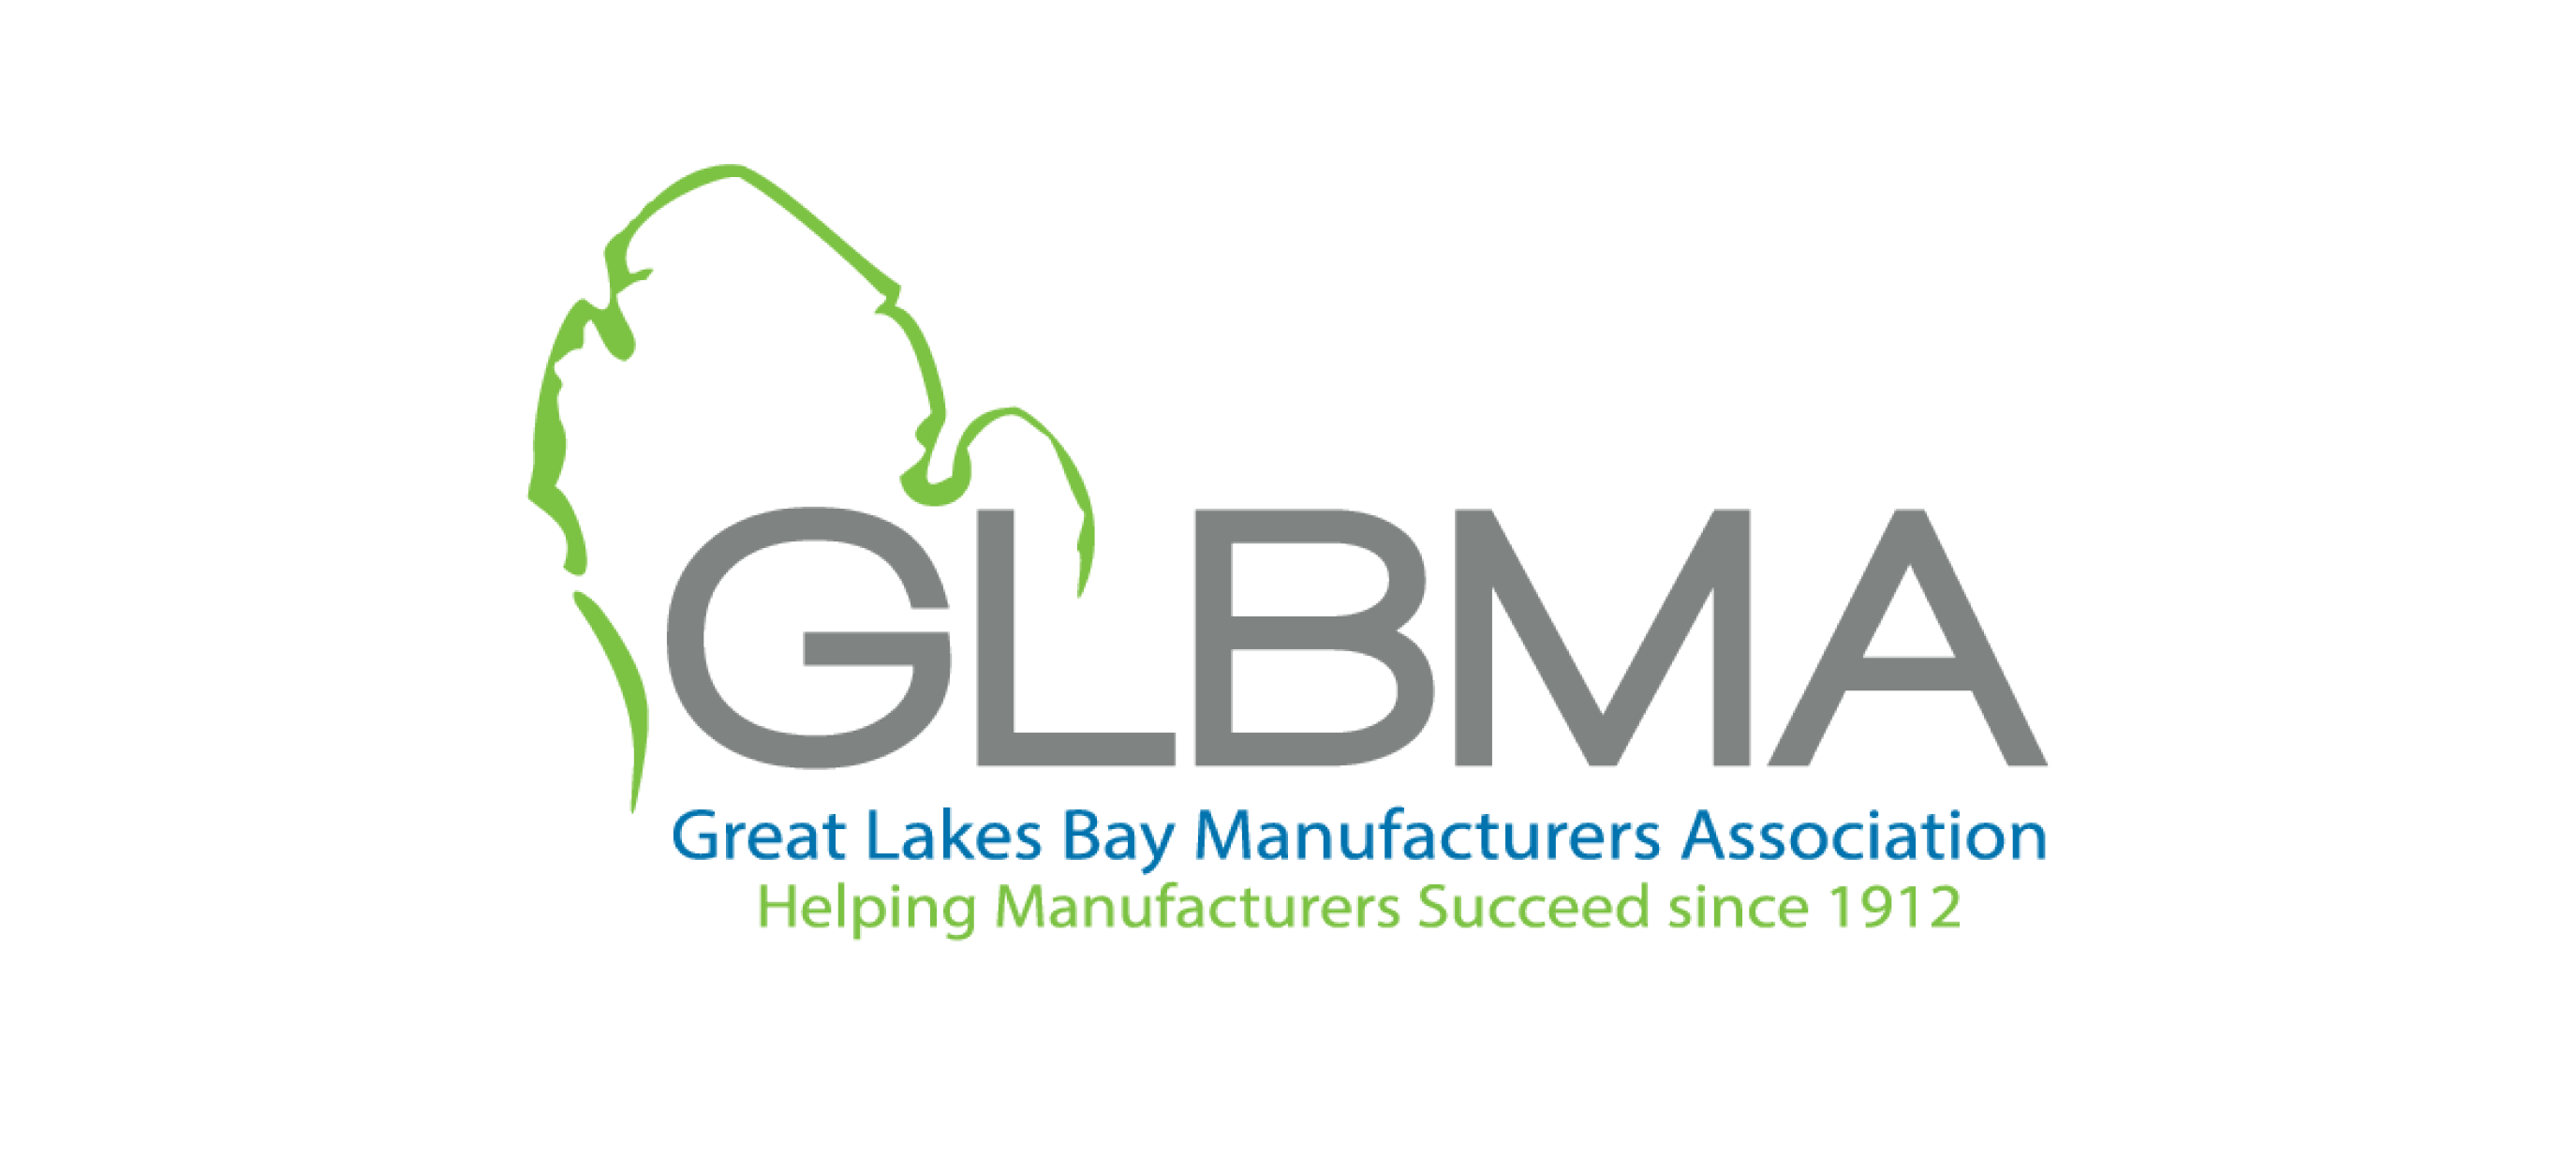 Great Lakes Bay Manufacturers Association